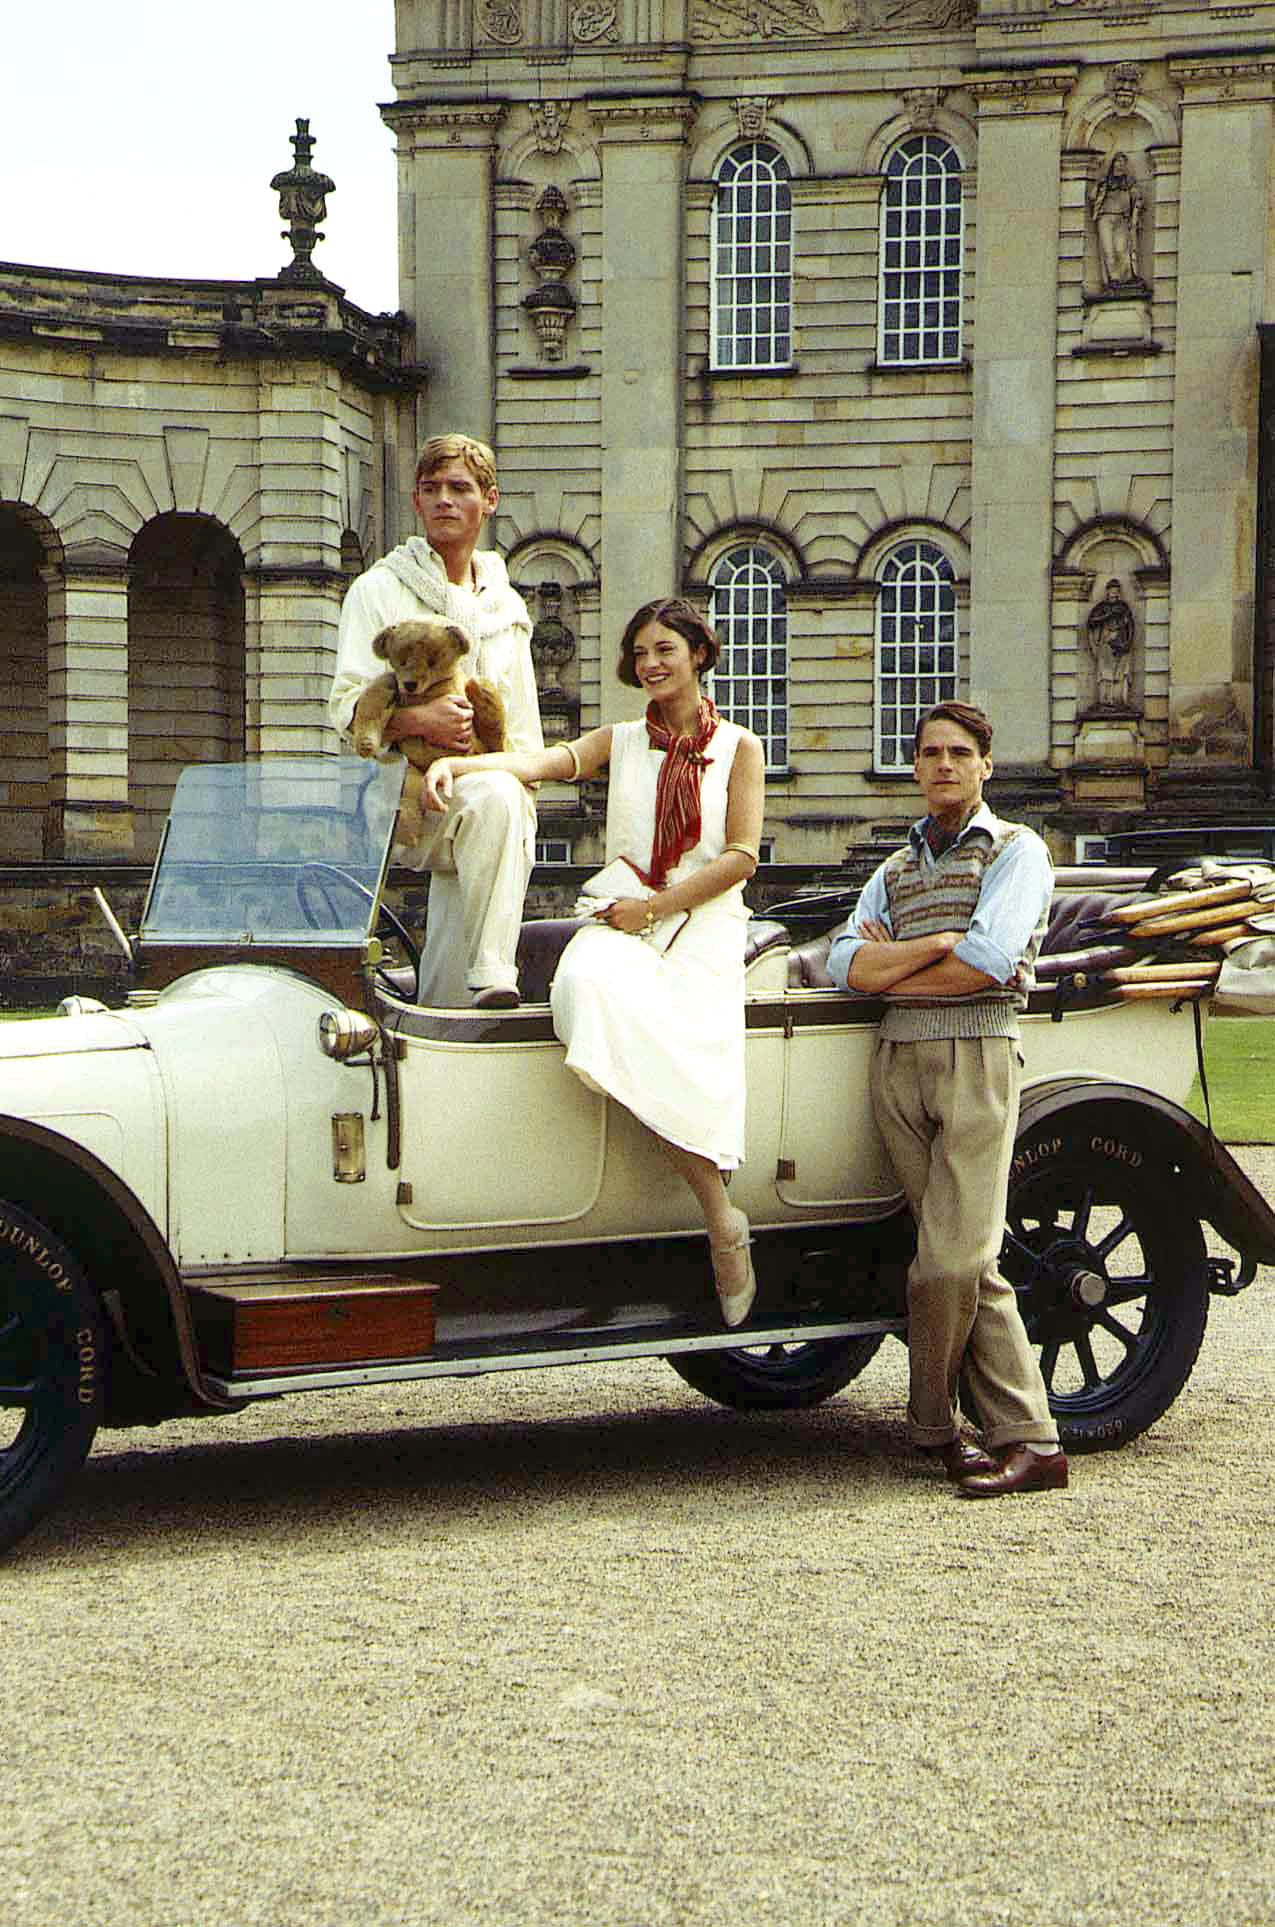 BRIDESHEAD REVISITED, from left: Anthony Andrews, Diana Quick, Jeremy Irons, 1981. Granada Television/courtesy Everett Collection